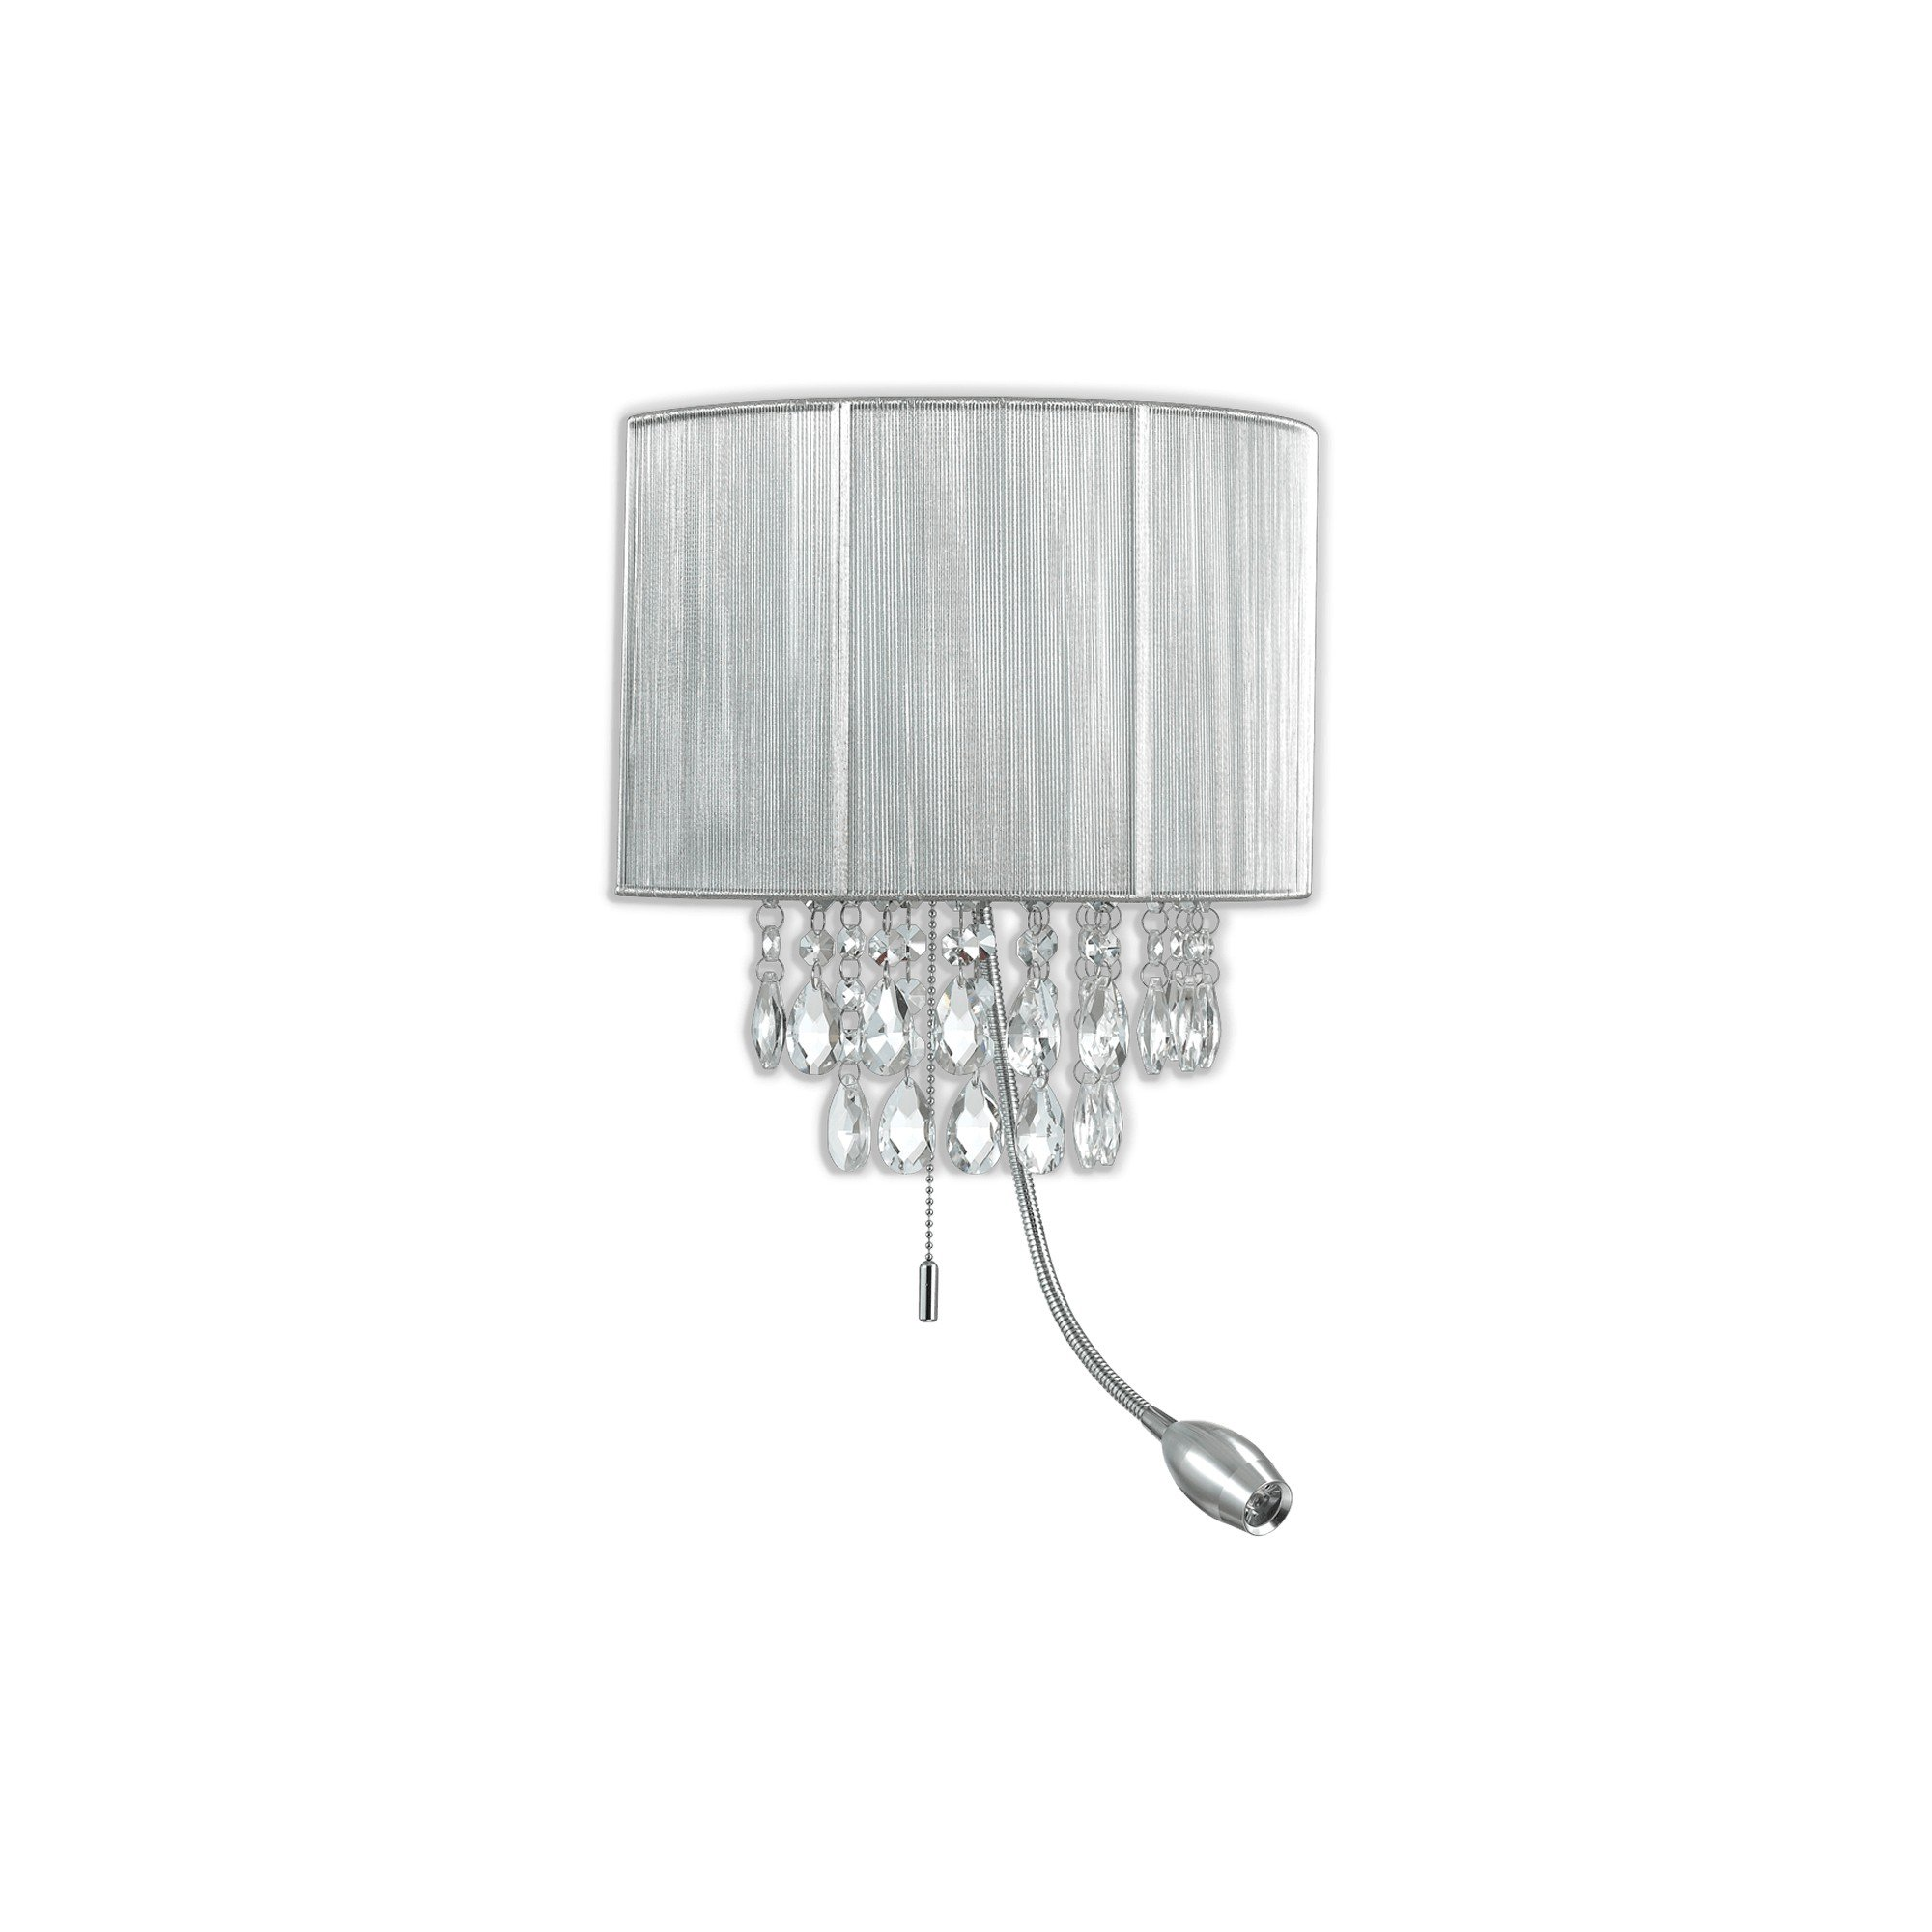 Бра Ideal Lux Opera AP3 Argento (122588)